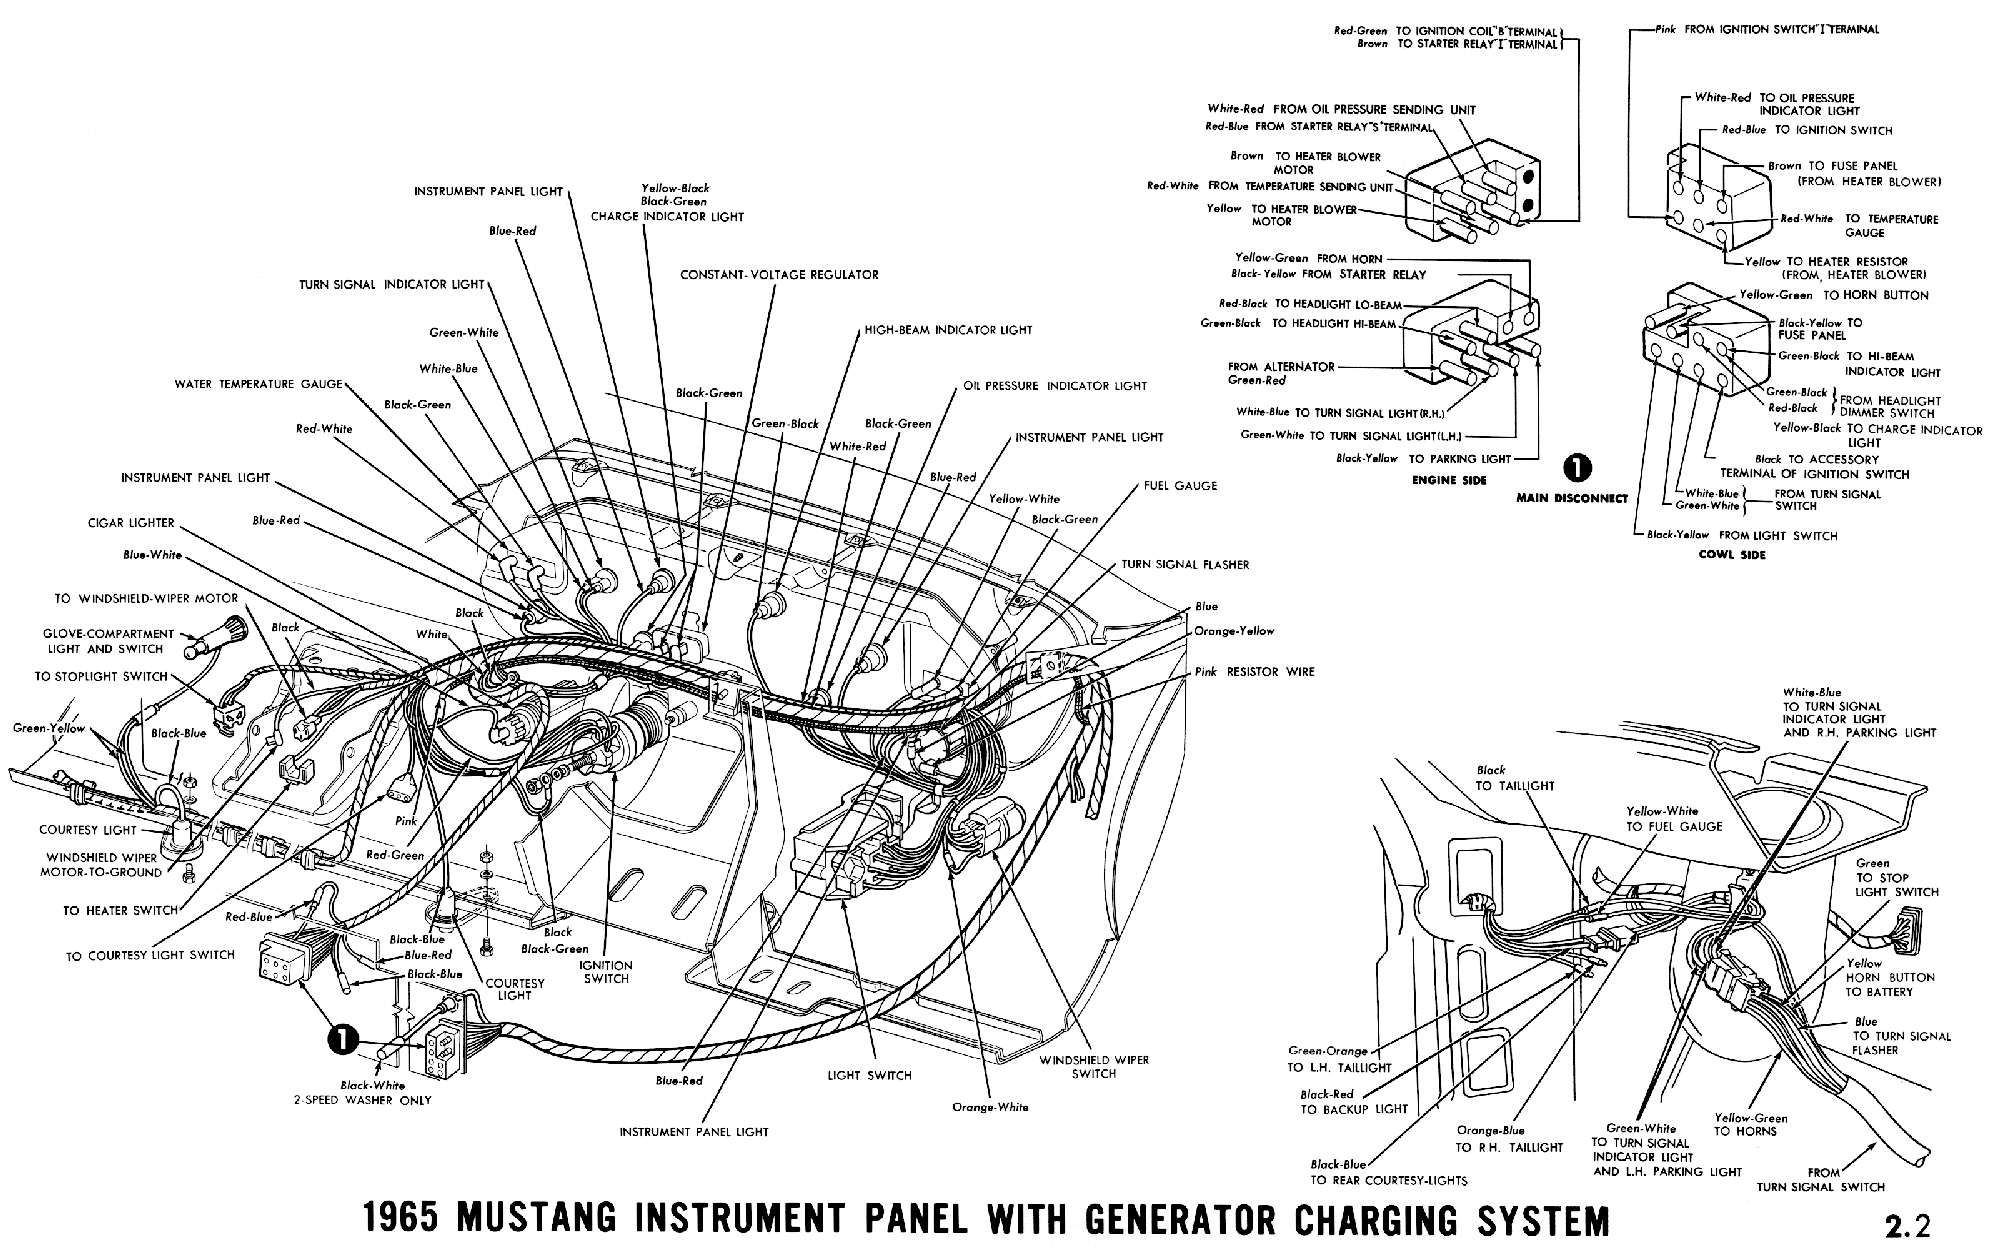 1965 Mustang Wiring Diagrams Average Joe Restoration 1965 Mustang Mustang Diagram